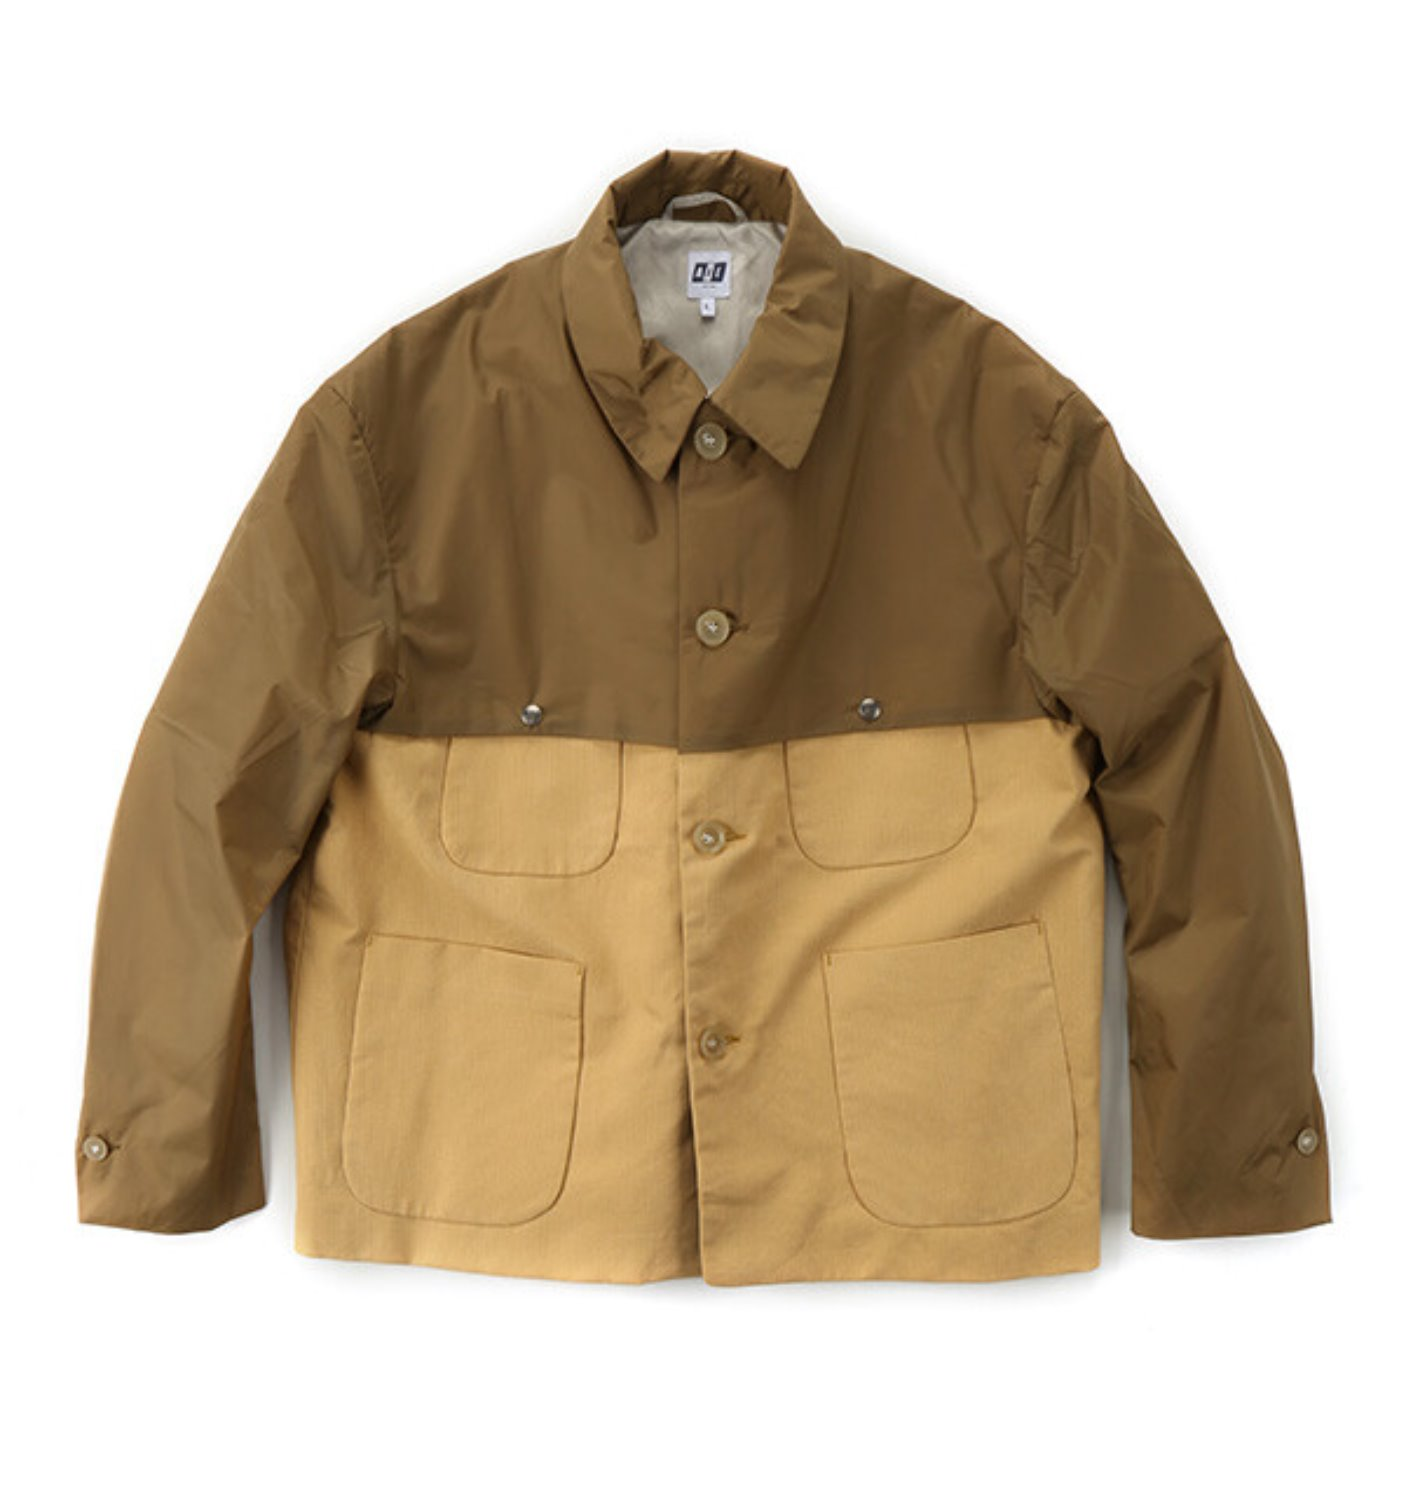 THT JACKET YELLOW BEDFORD CORD